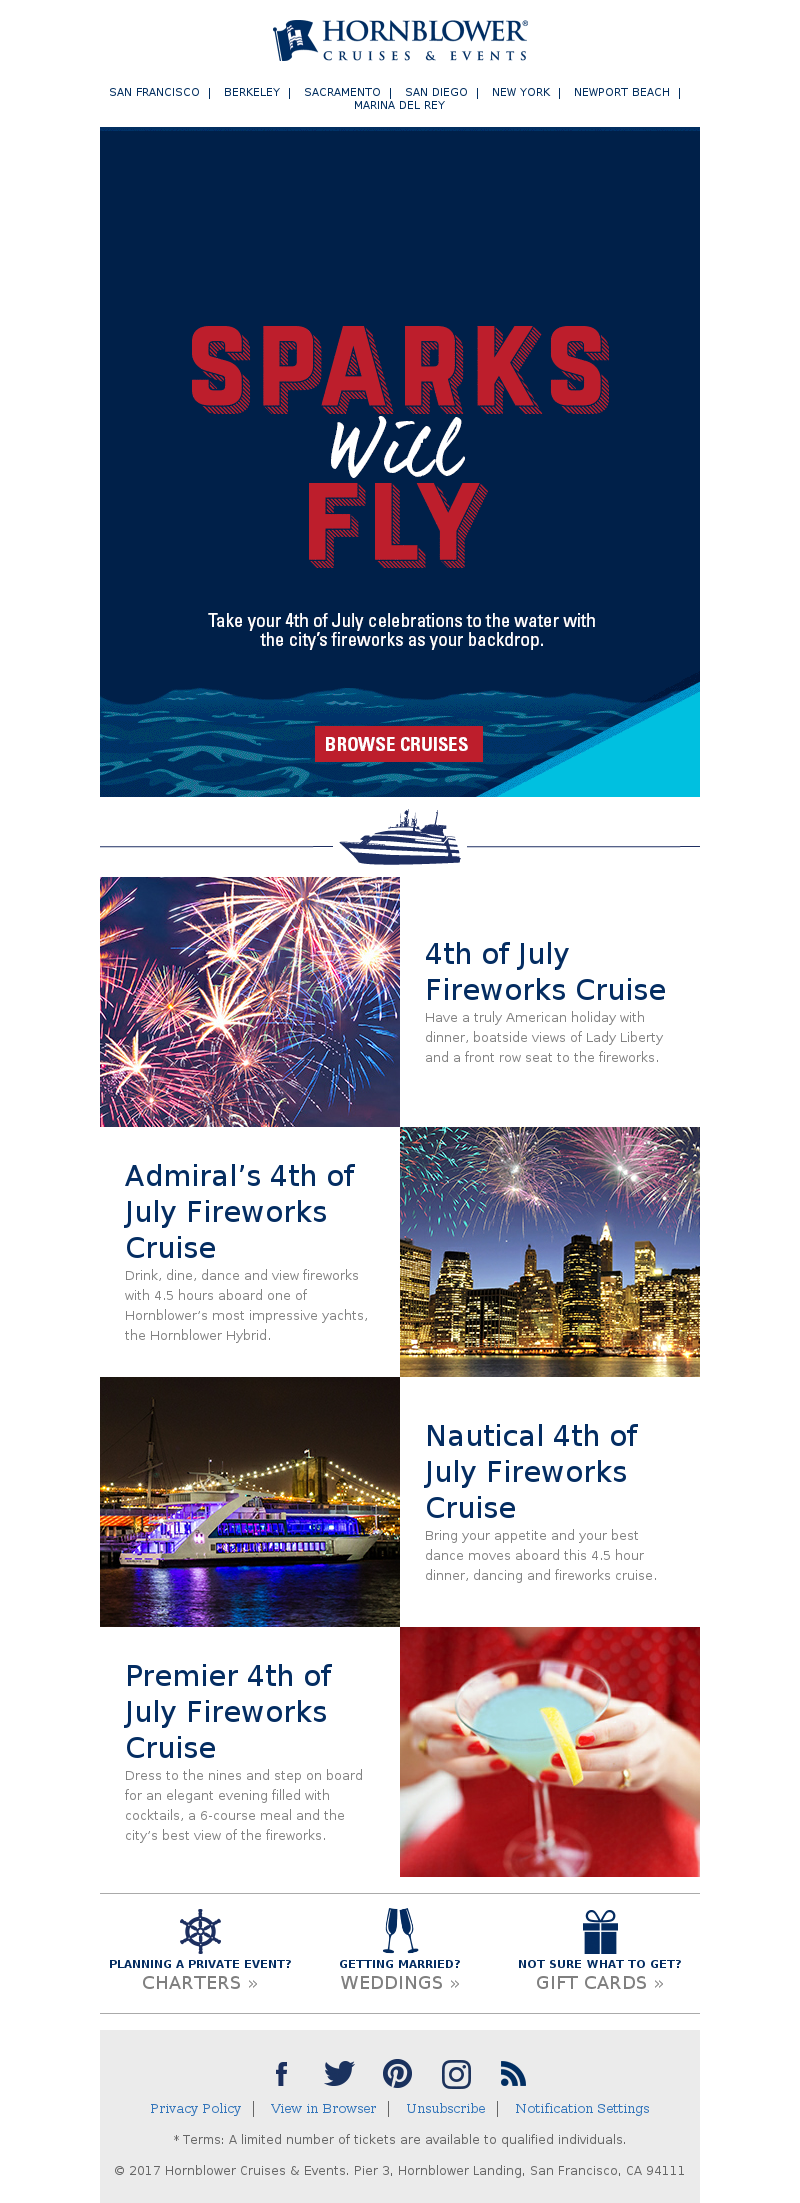 Book your 4th of July cruise now Hornblower Cruises & Events SAN FRANCISCO